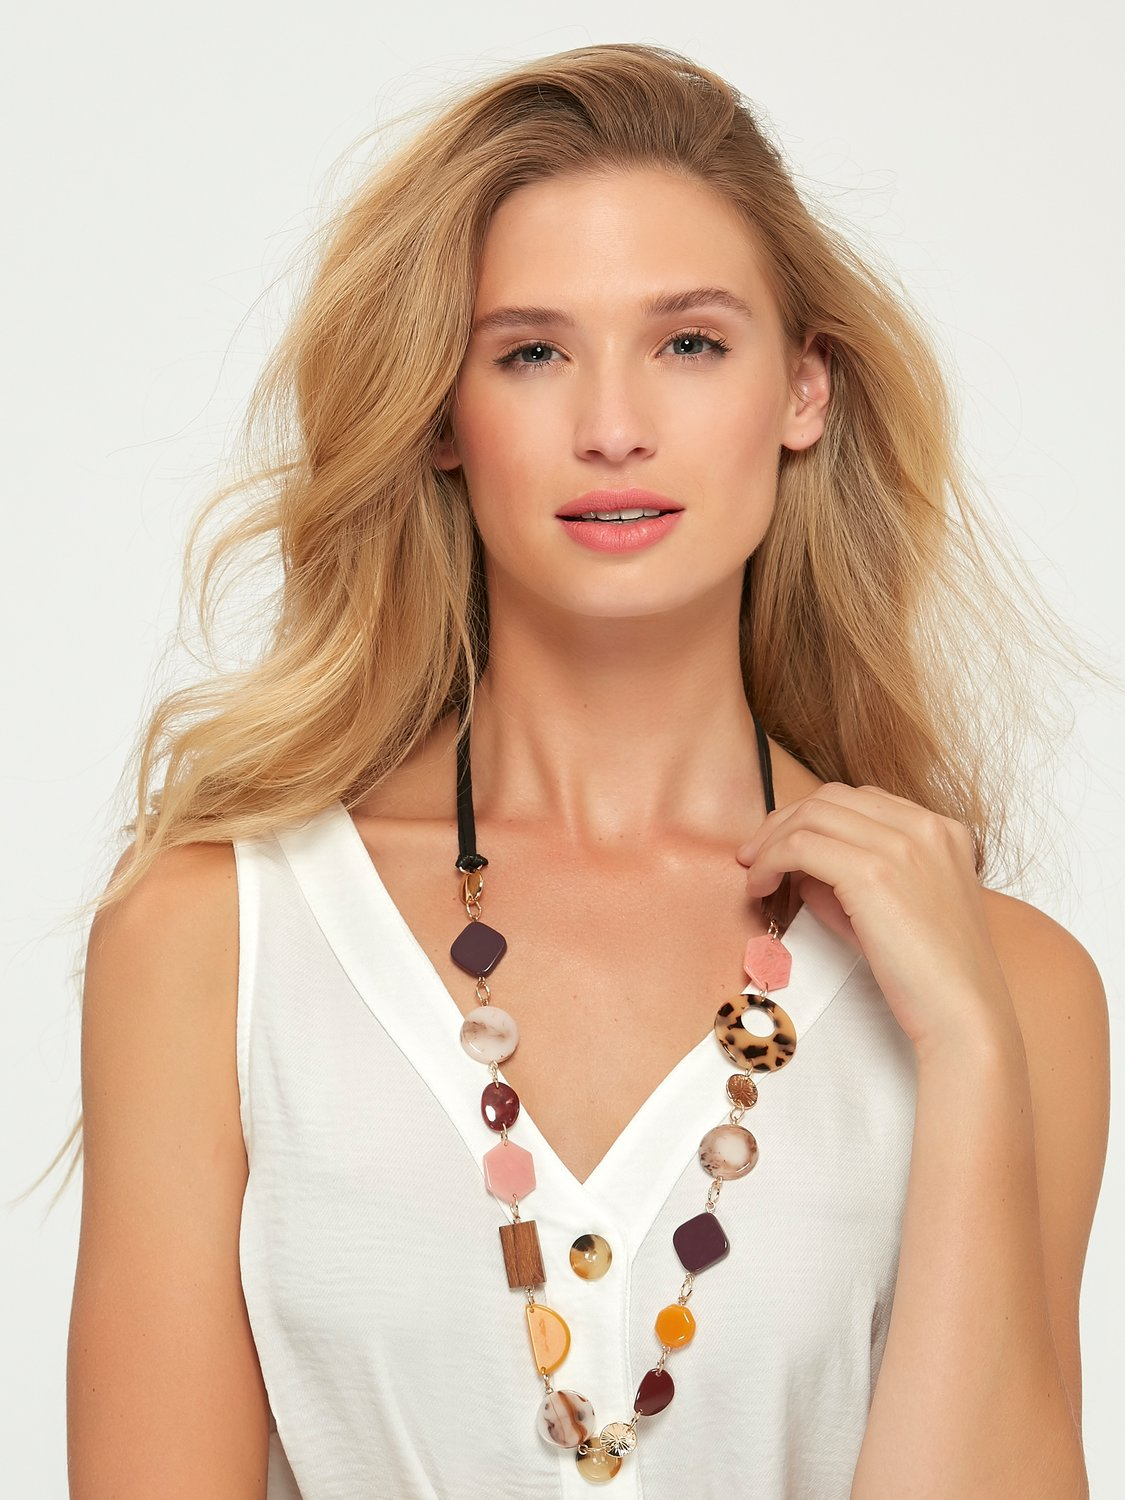 Ladies necklace in a long rope style with beads and discs  - Multicolour